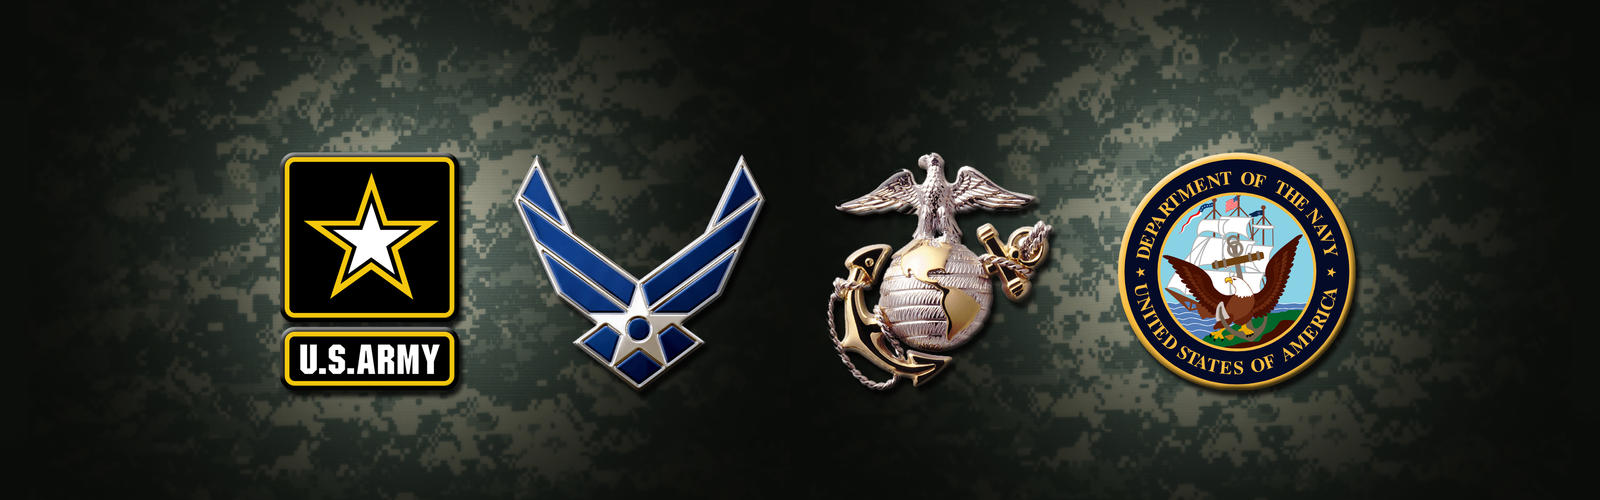 Military Branches by arichens on DeviantArt